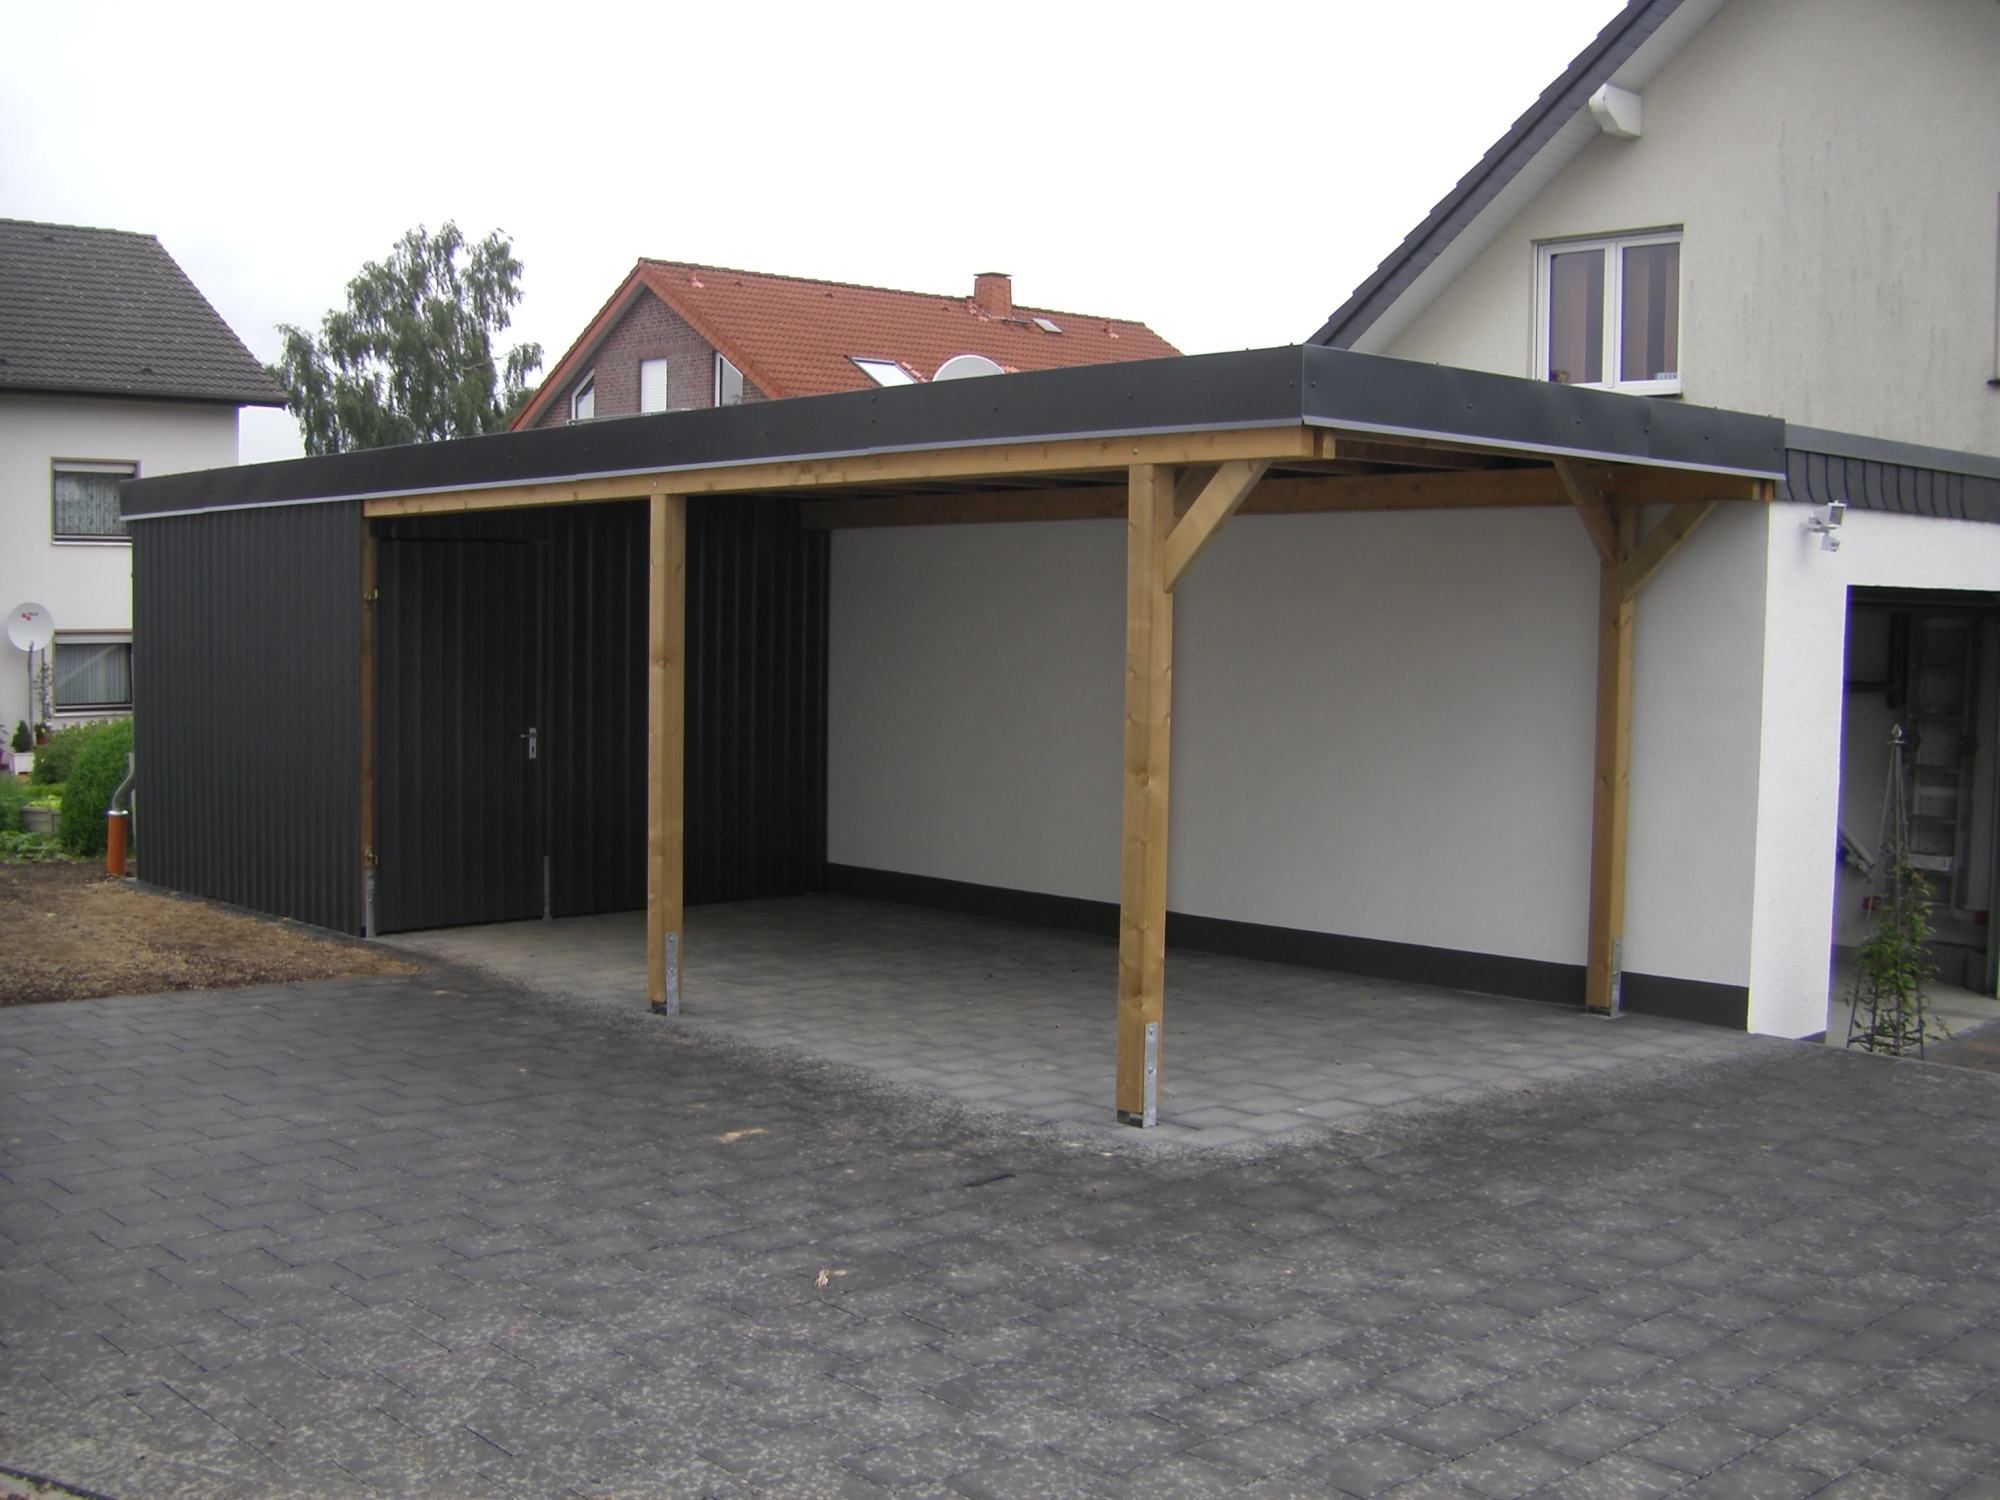 Garage Carport Kombination Carport Garage Kombination Holz Cool Holzcarport With Carport